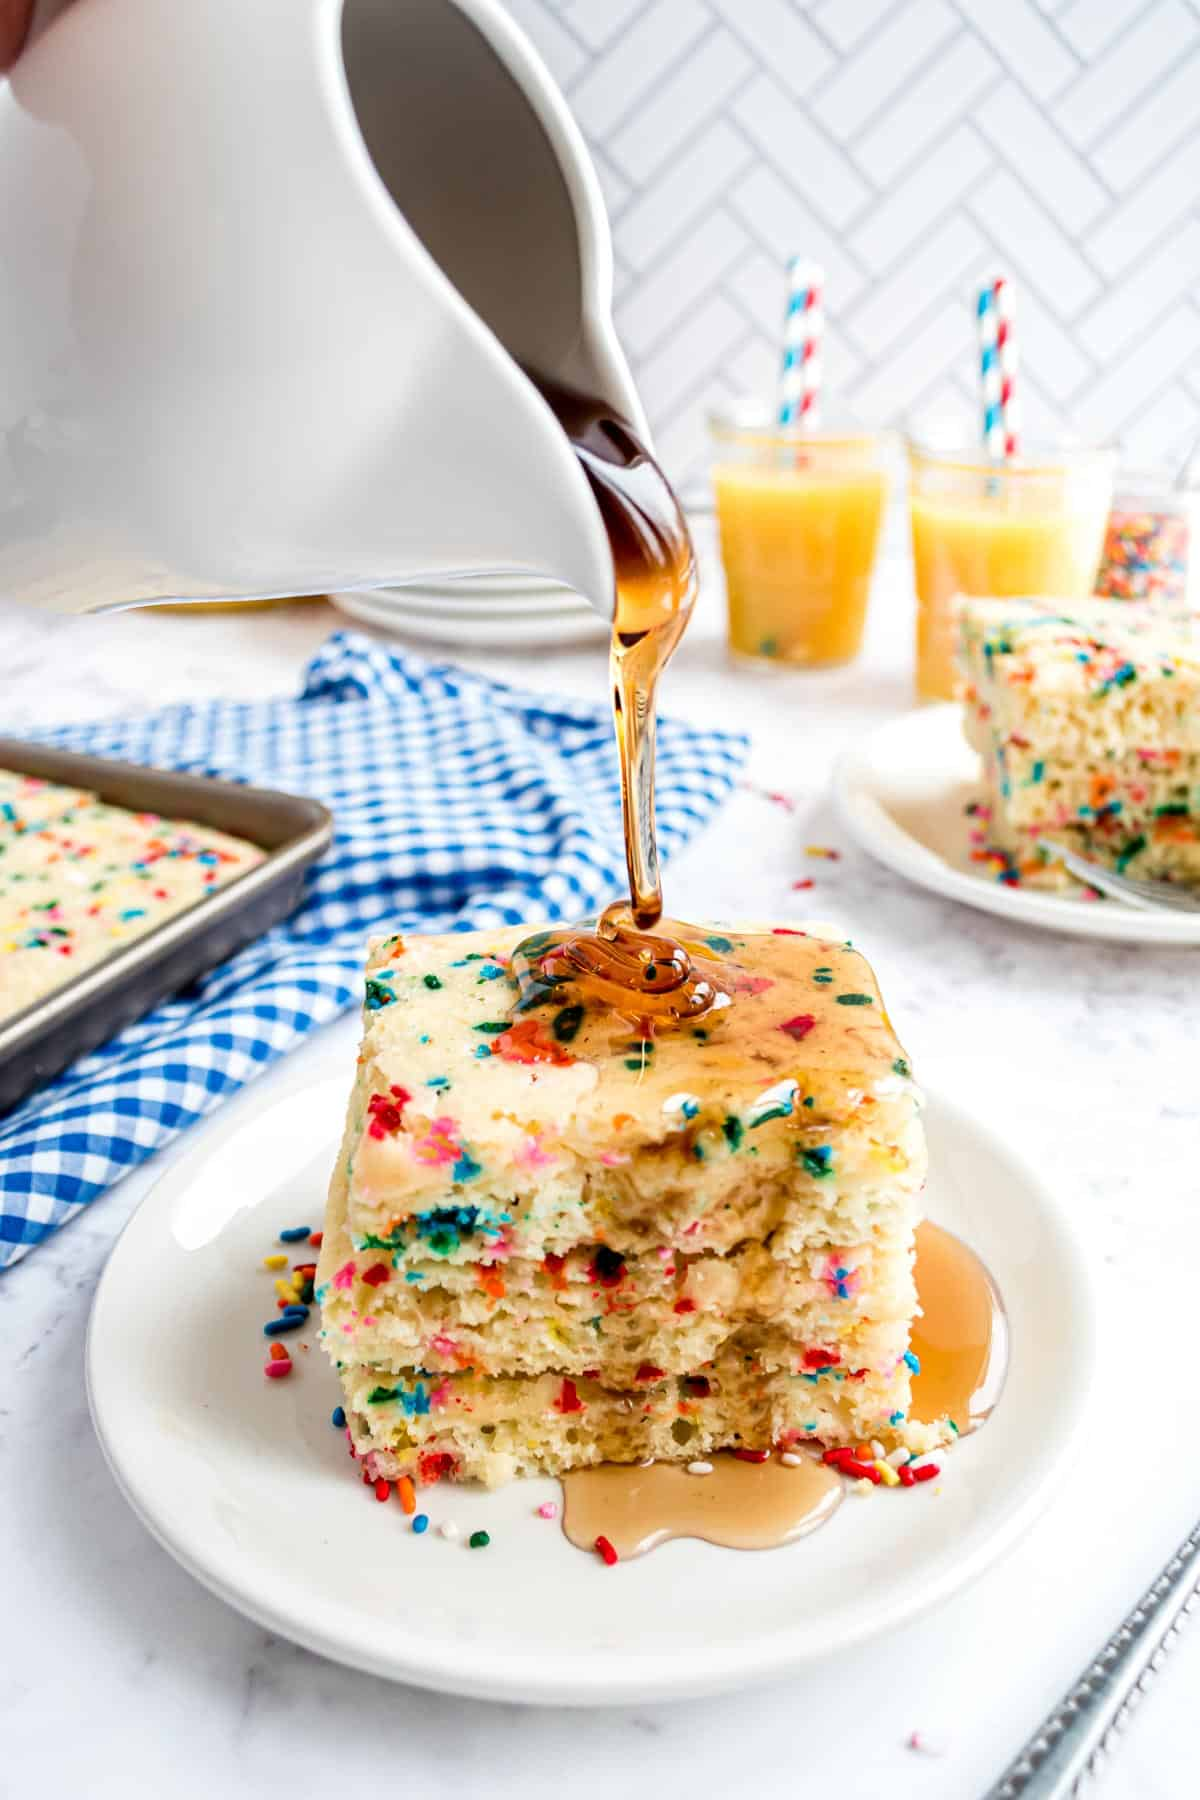 Syrup being poured on a stack of sprinkled pancaked.